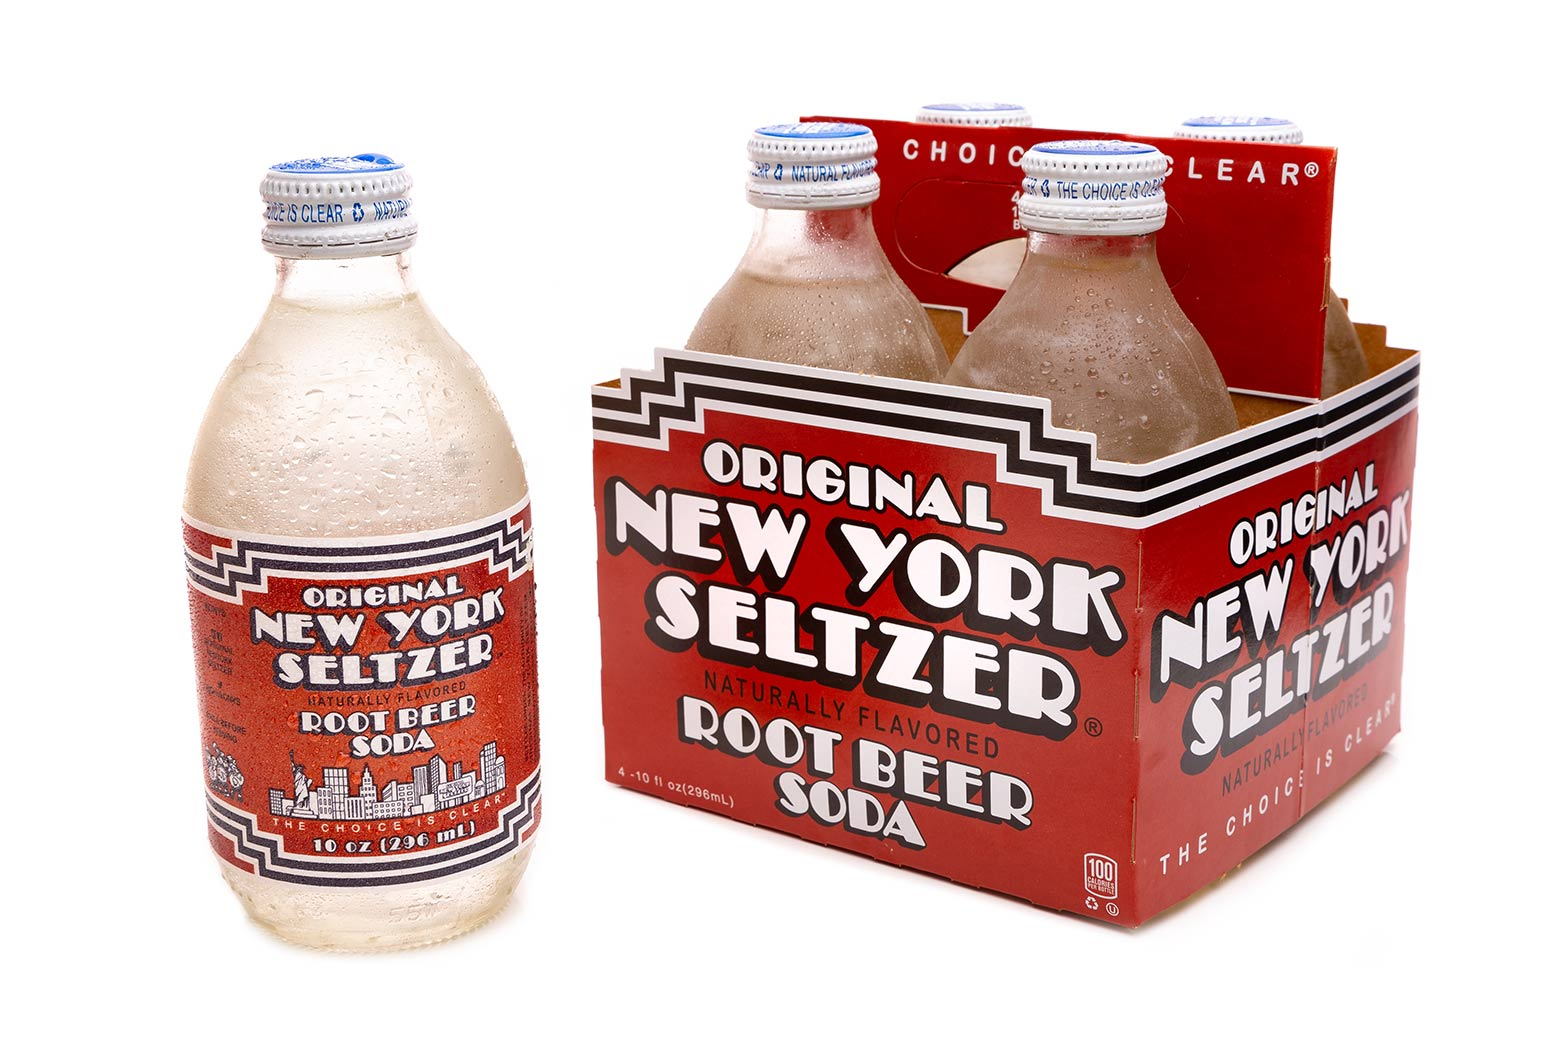 Original New York Seltzer Root Beer 4-pack carrier with bottle